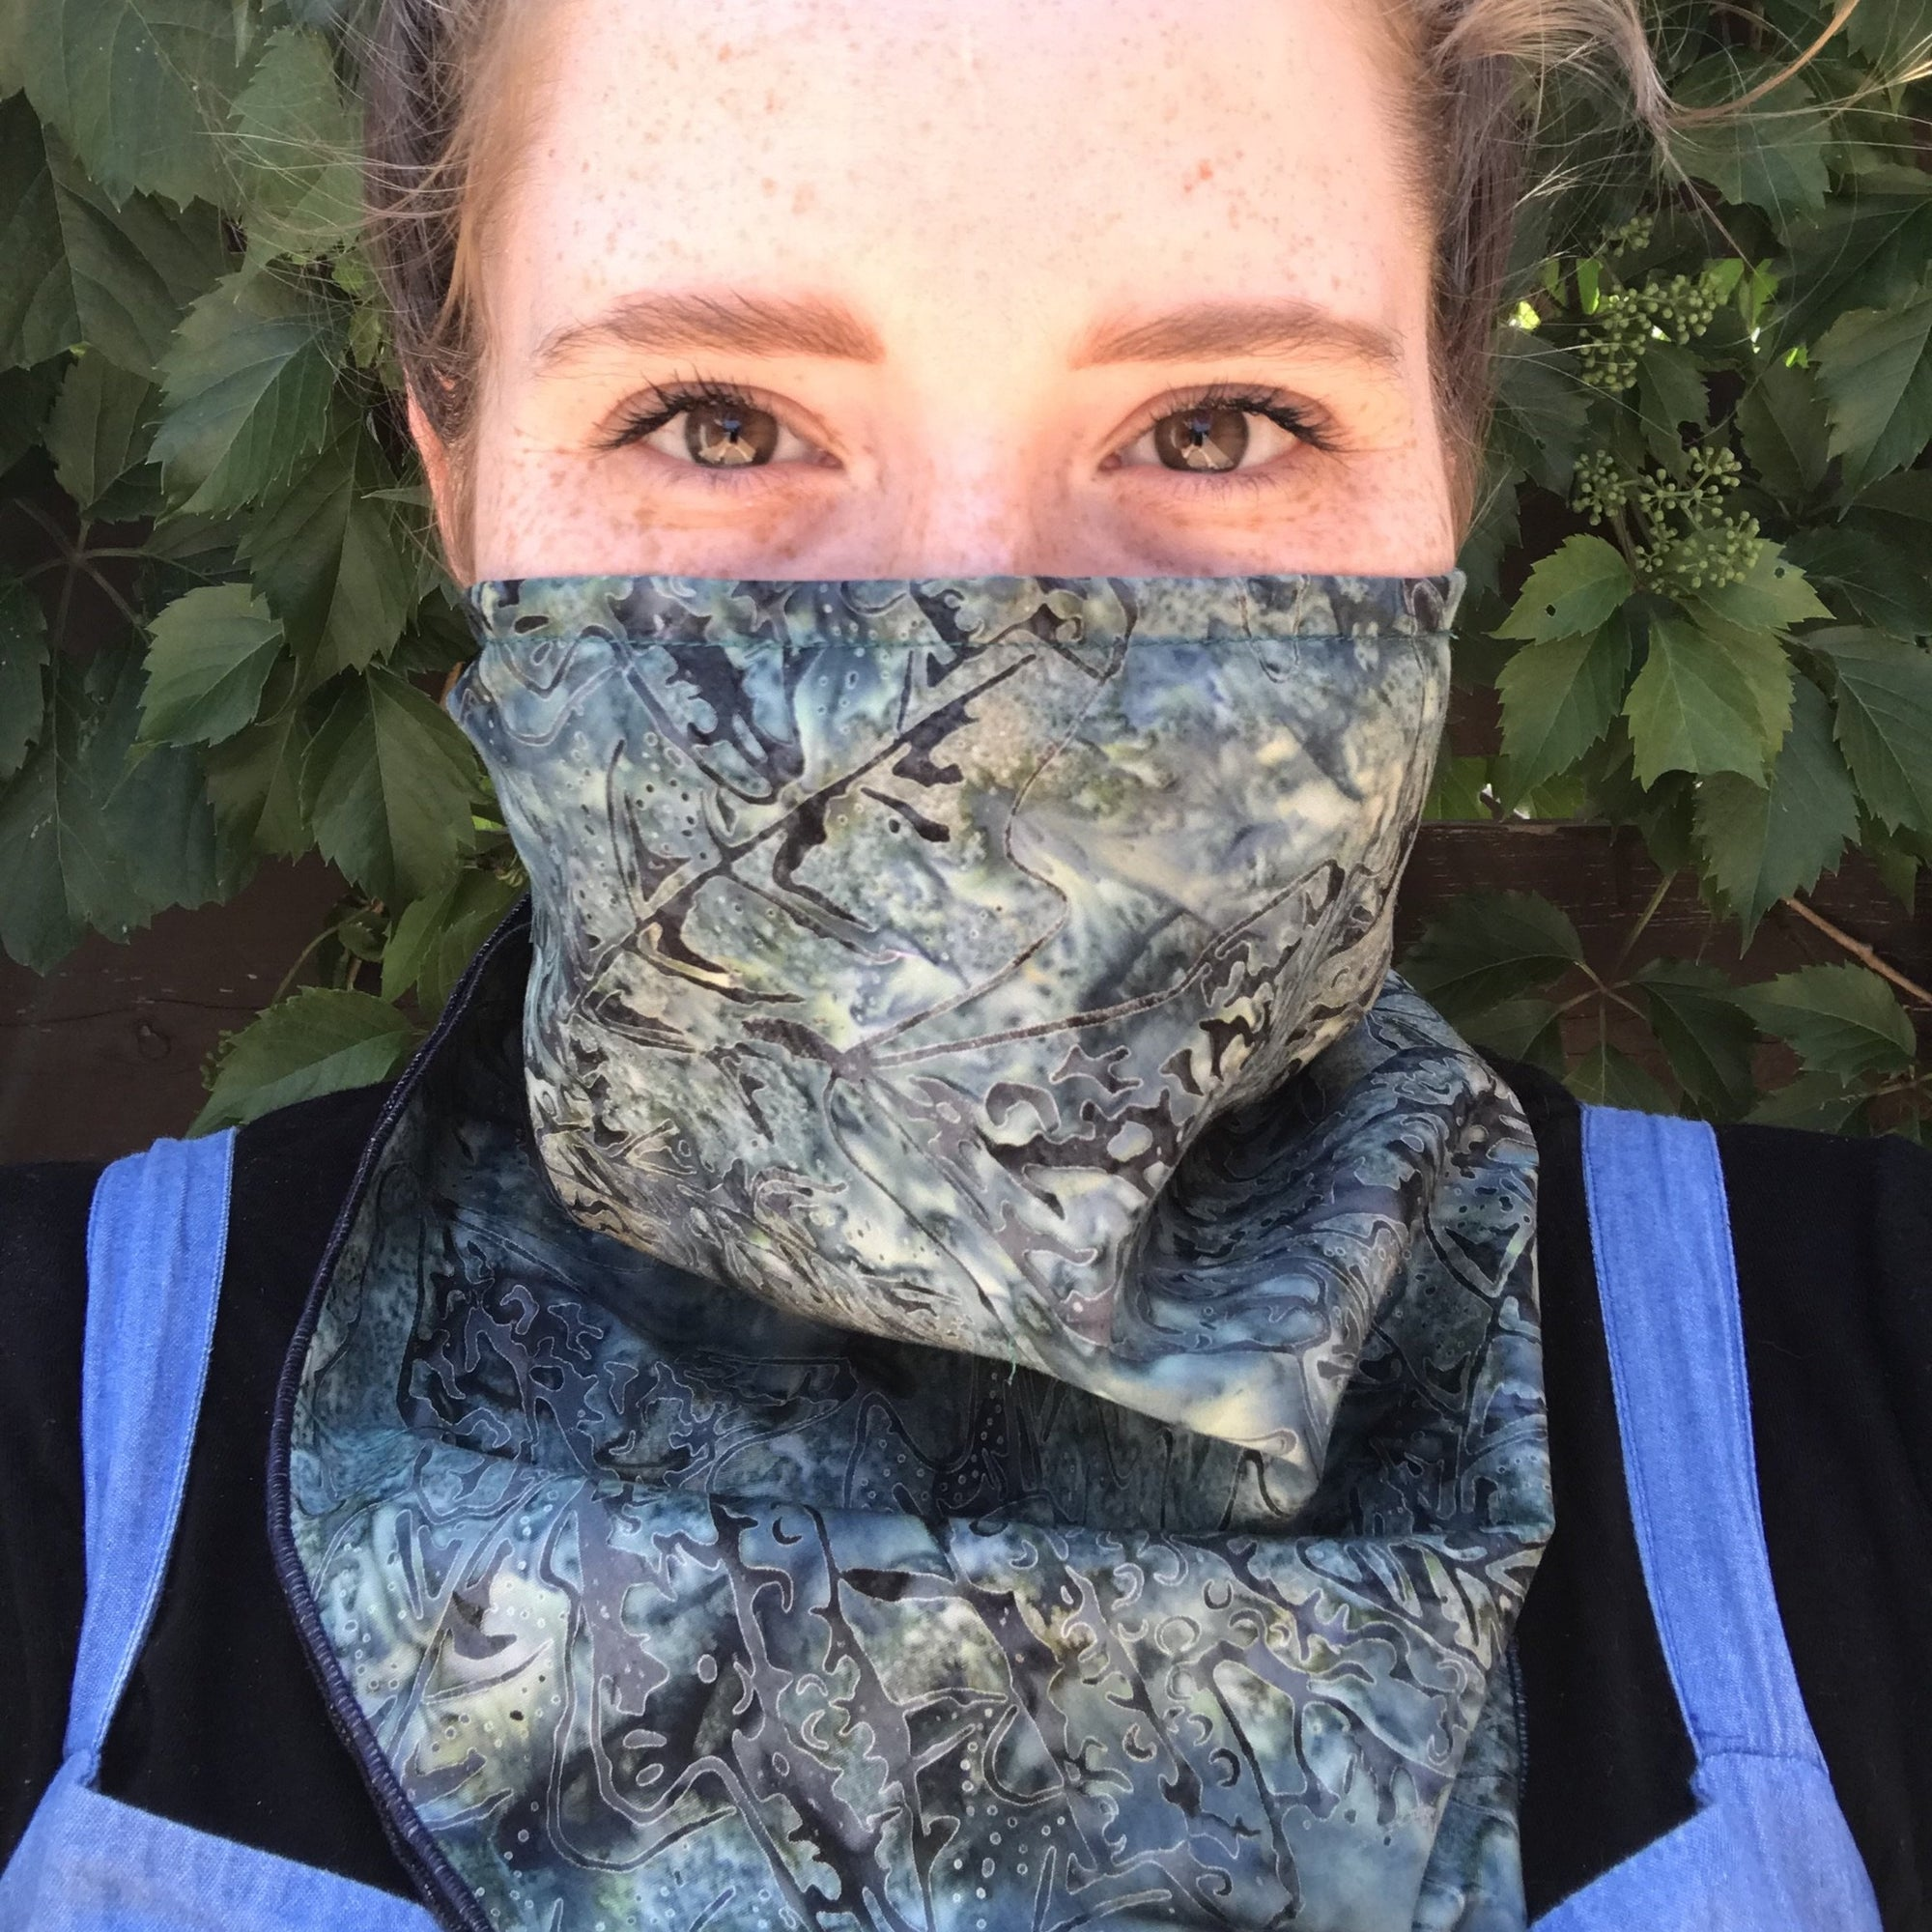 Handmade Deep Woods Bandana Mask with nosepiece, COVID handmade by Beth Millner Jewelry